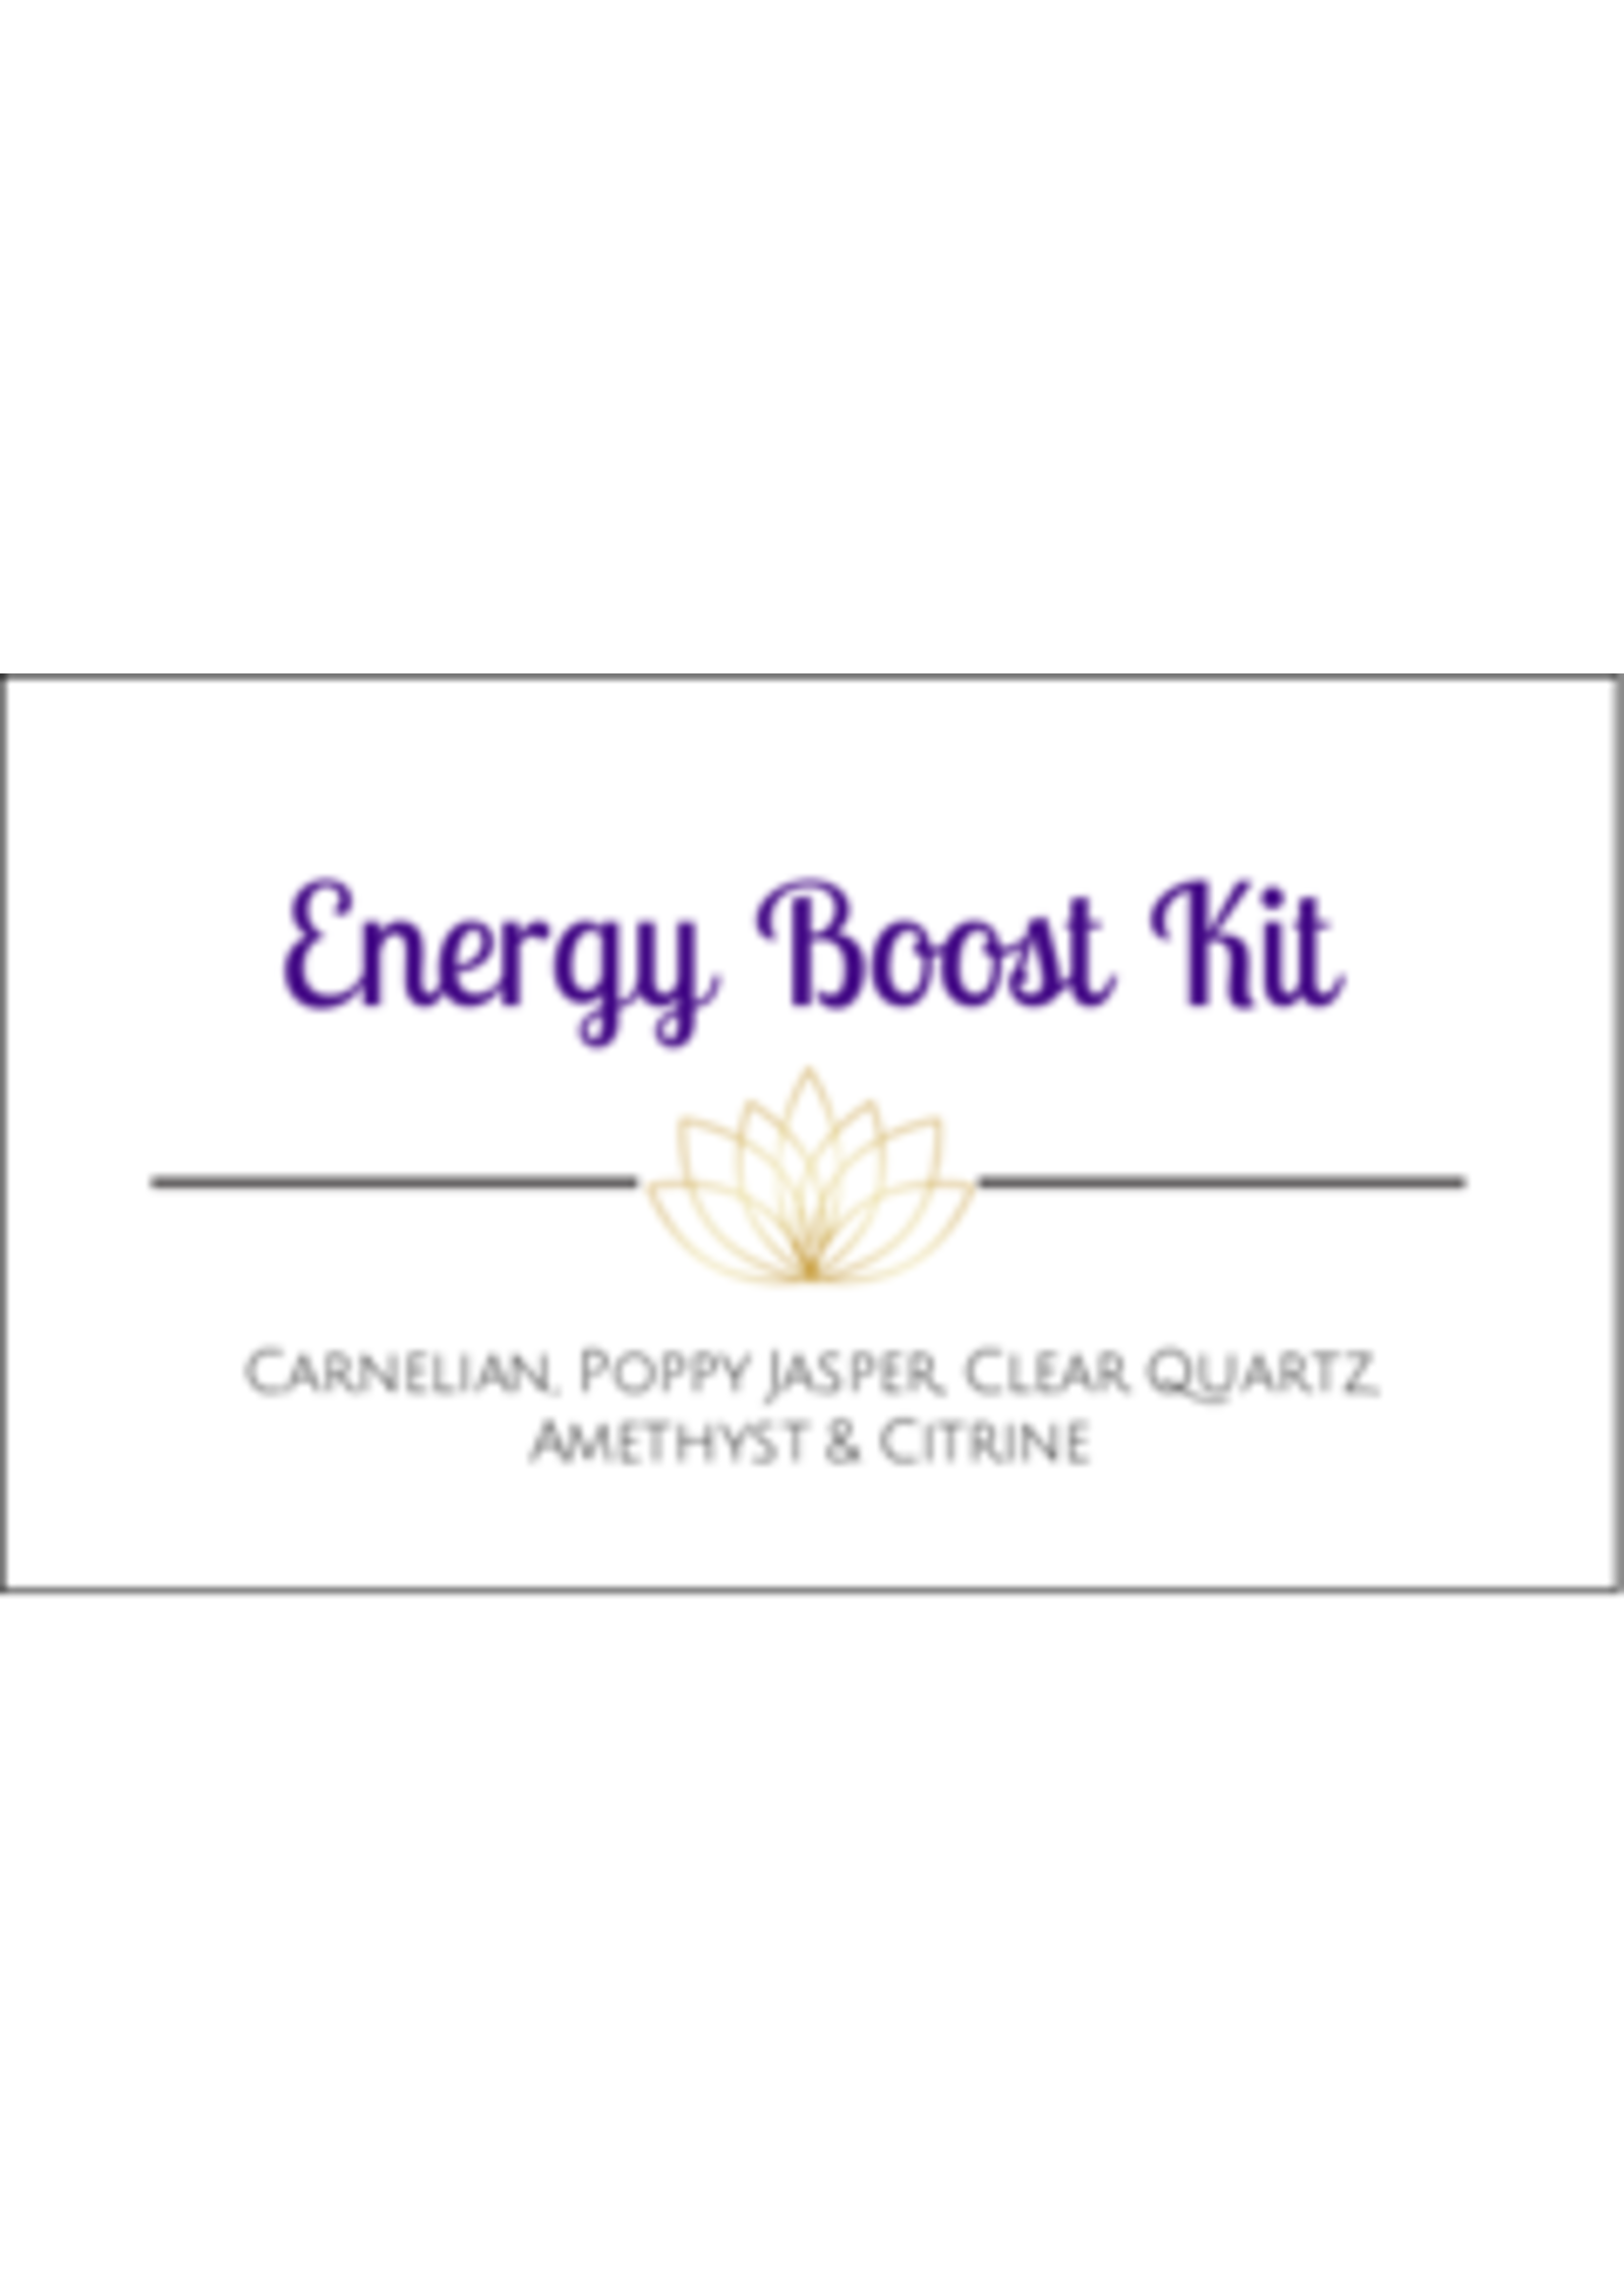 Energy Boost Crystal Kit Cards - Box of 100